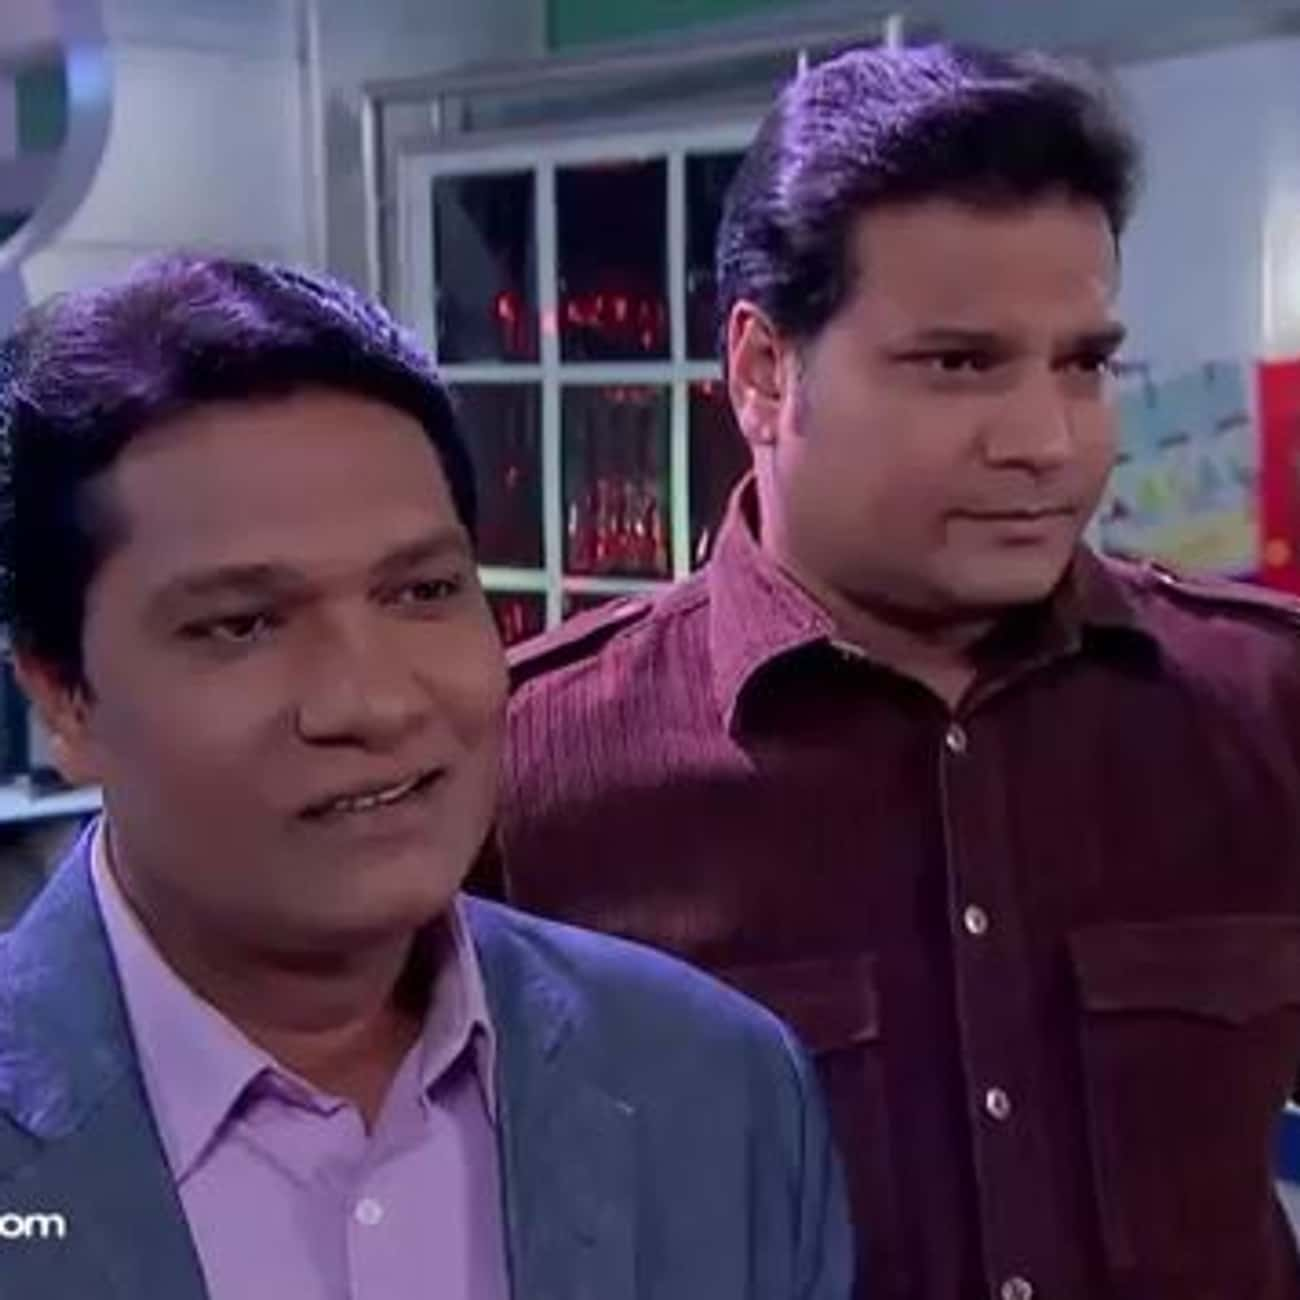 Khooni Laash is listed (or ranked) 1 on the list The Best C.I.D. Episodes